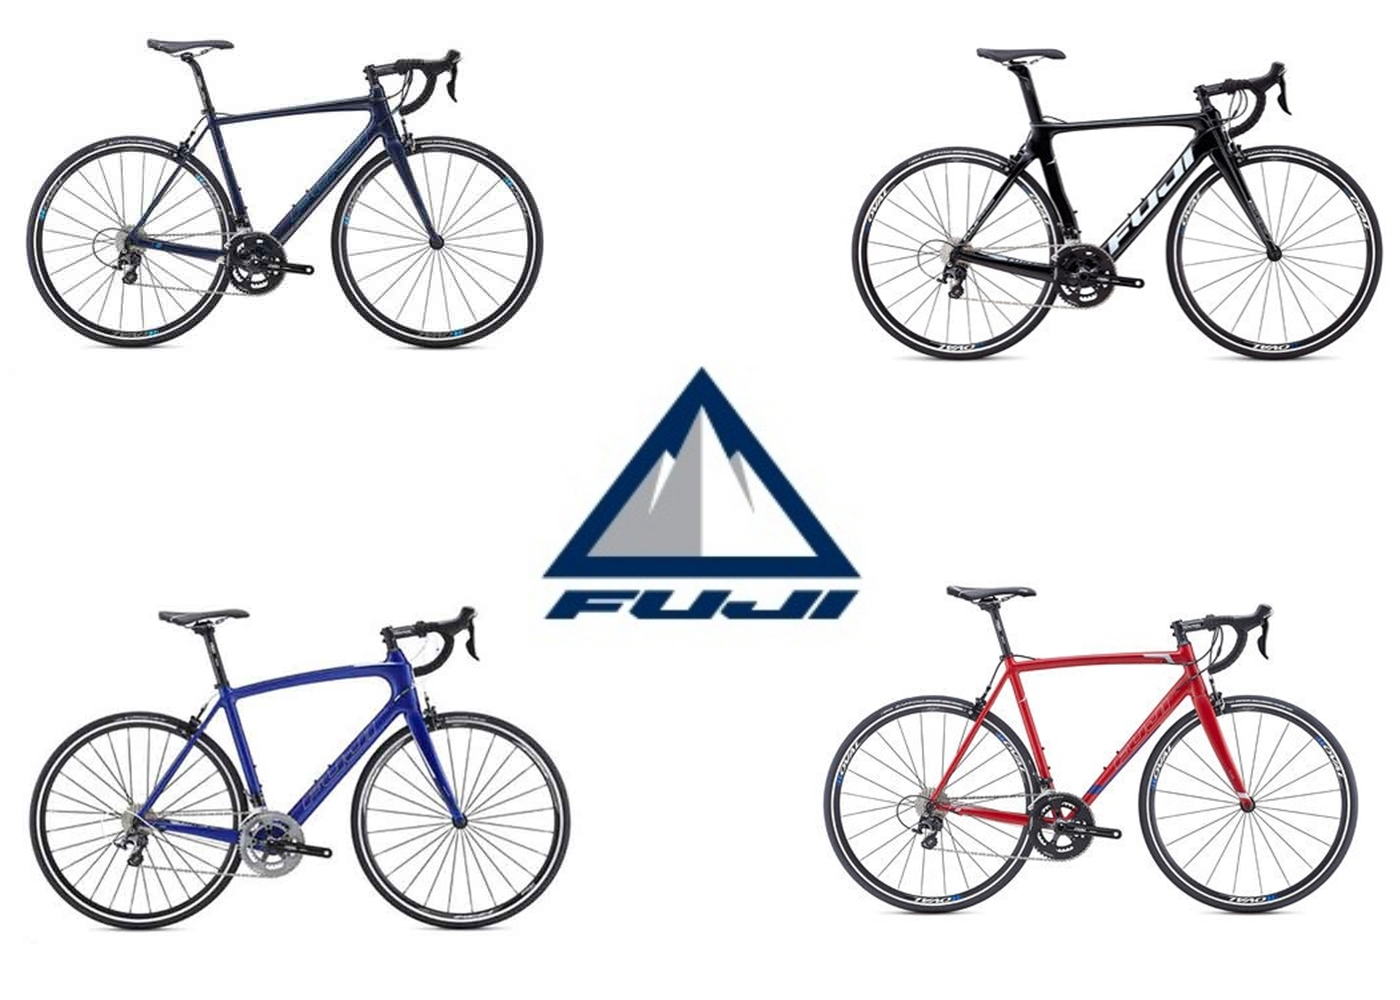 Fuji Launches 2016 Range Of Road Cycles.